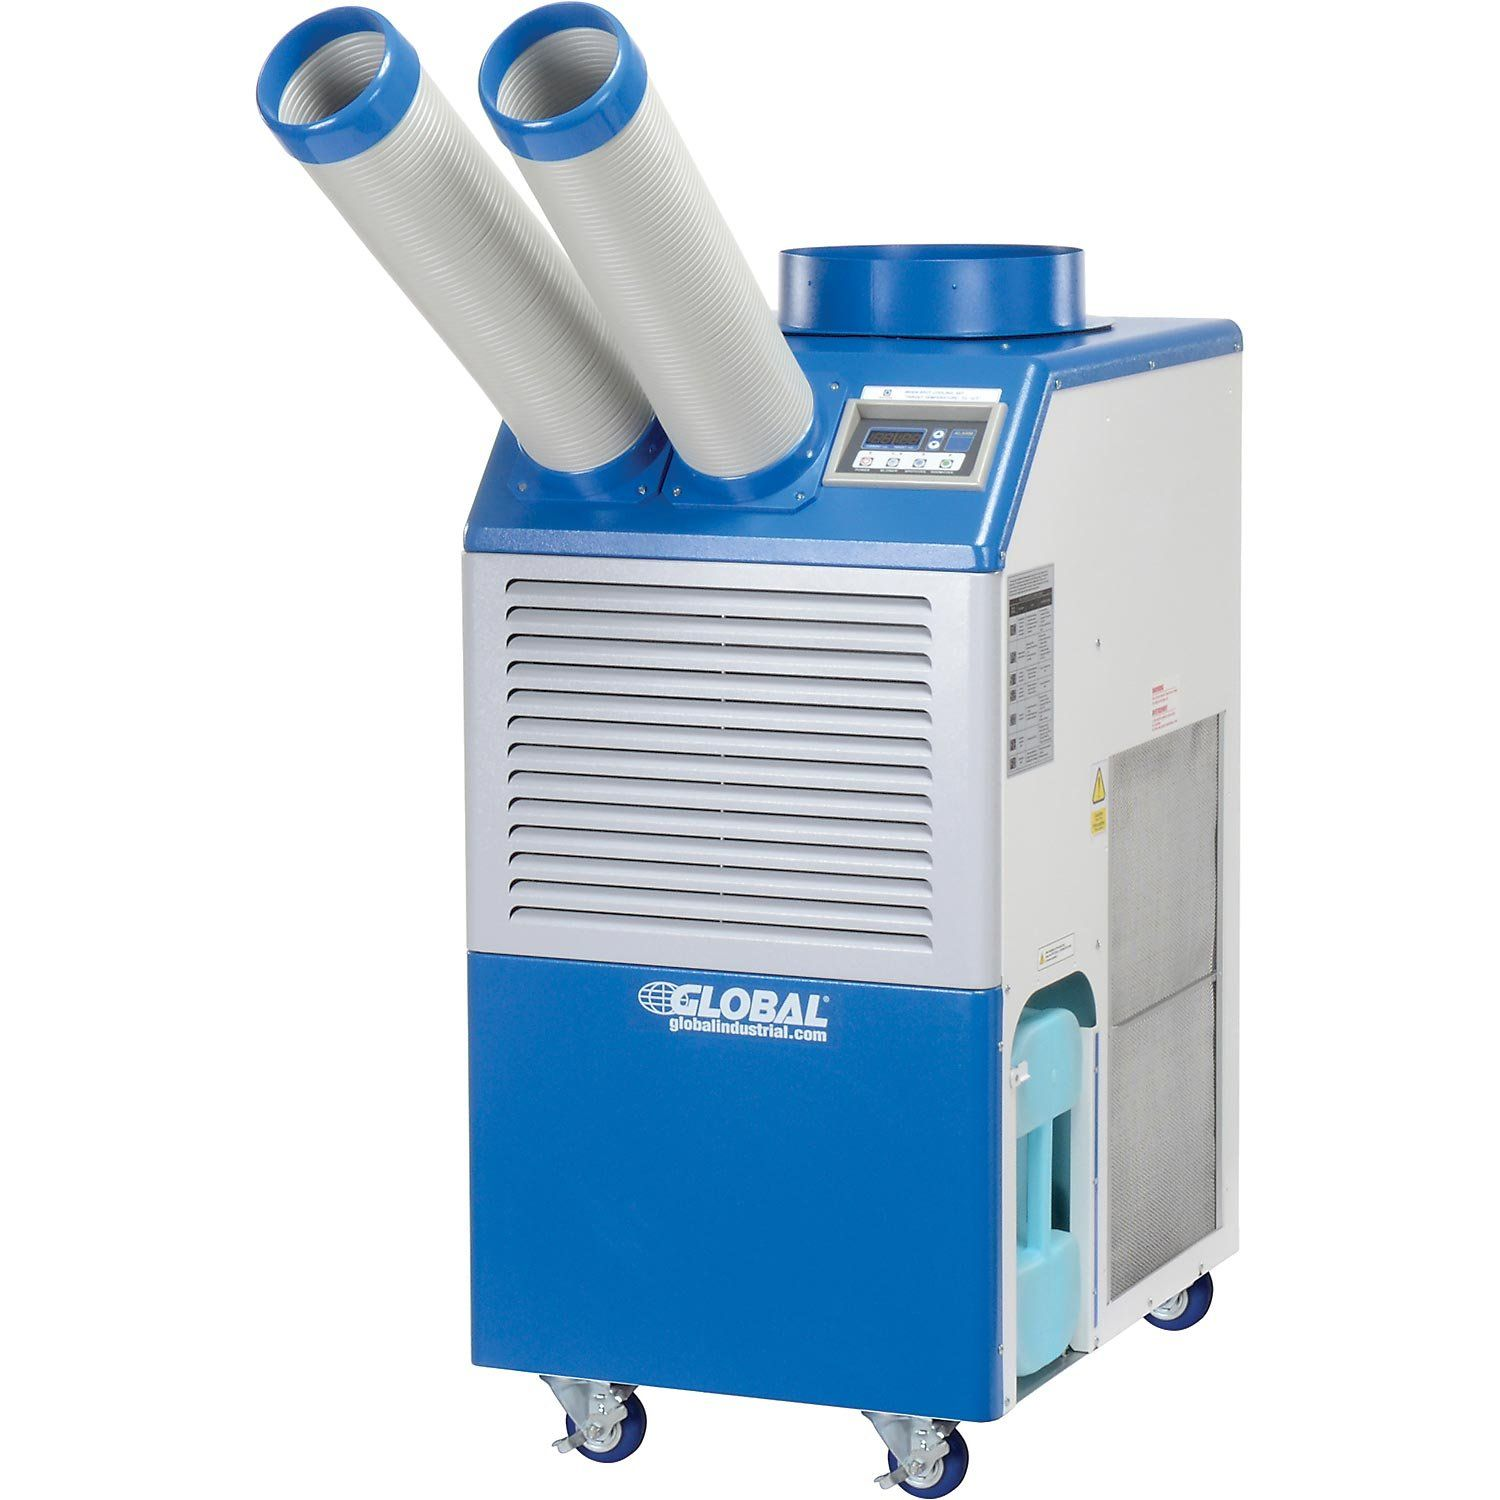 Industrial Portable AC 1.5 Ton w/ Cold Air Nozzles 16800